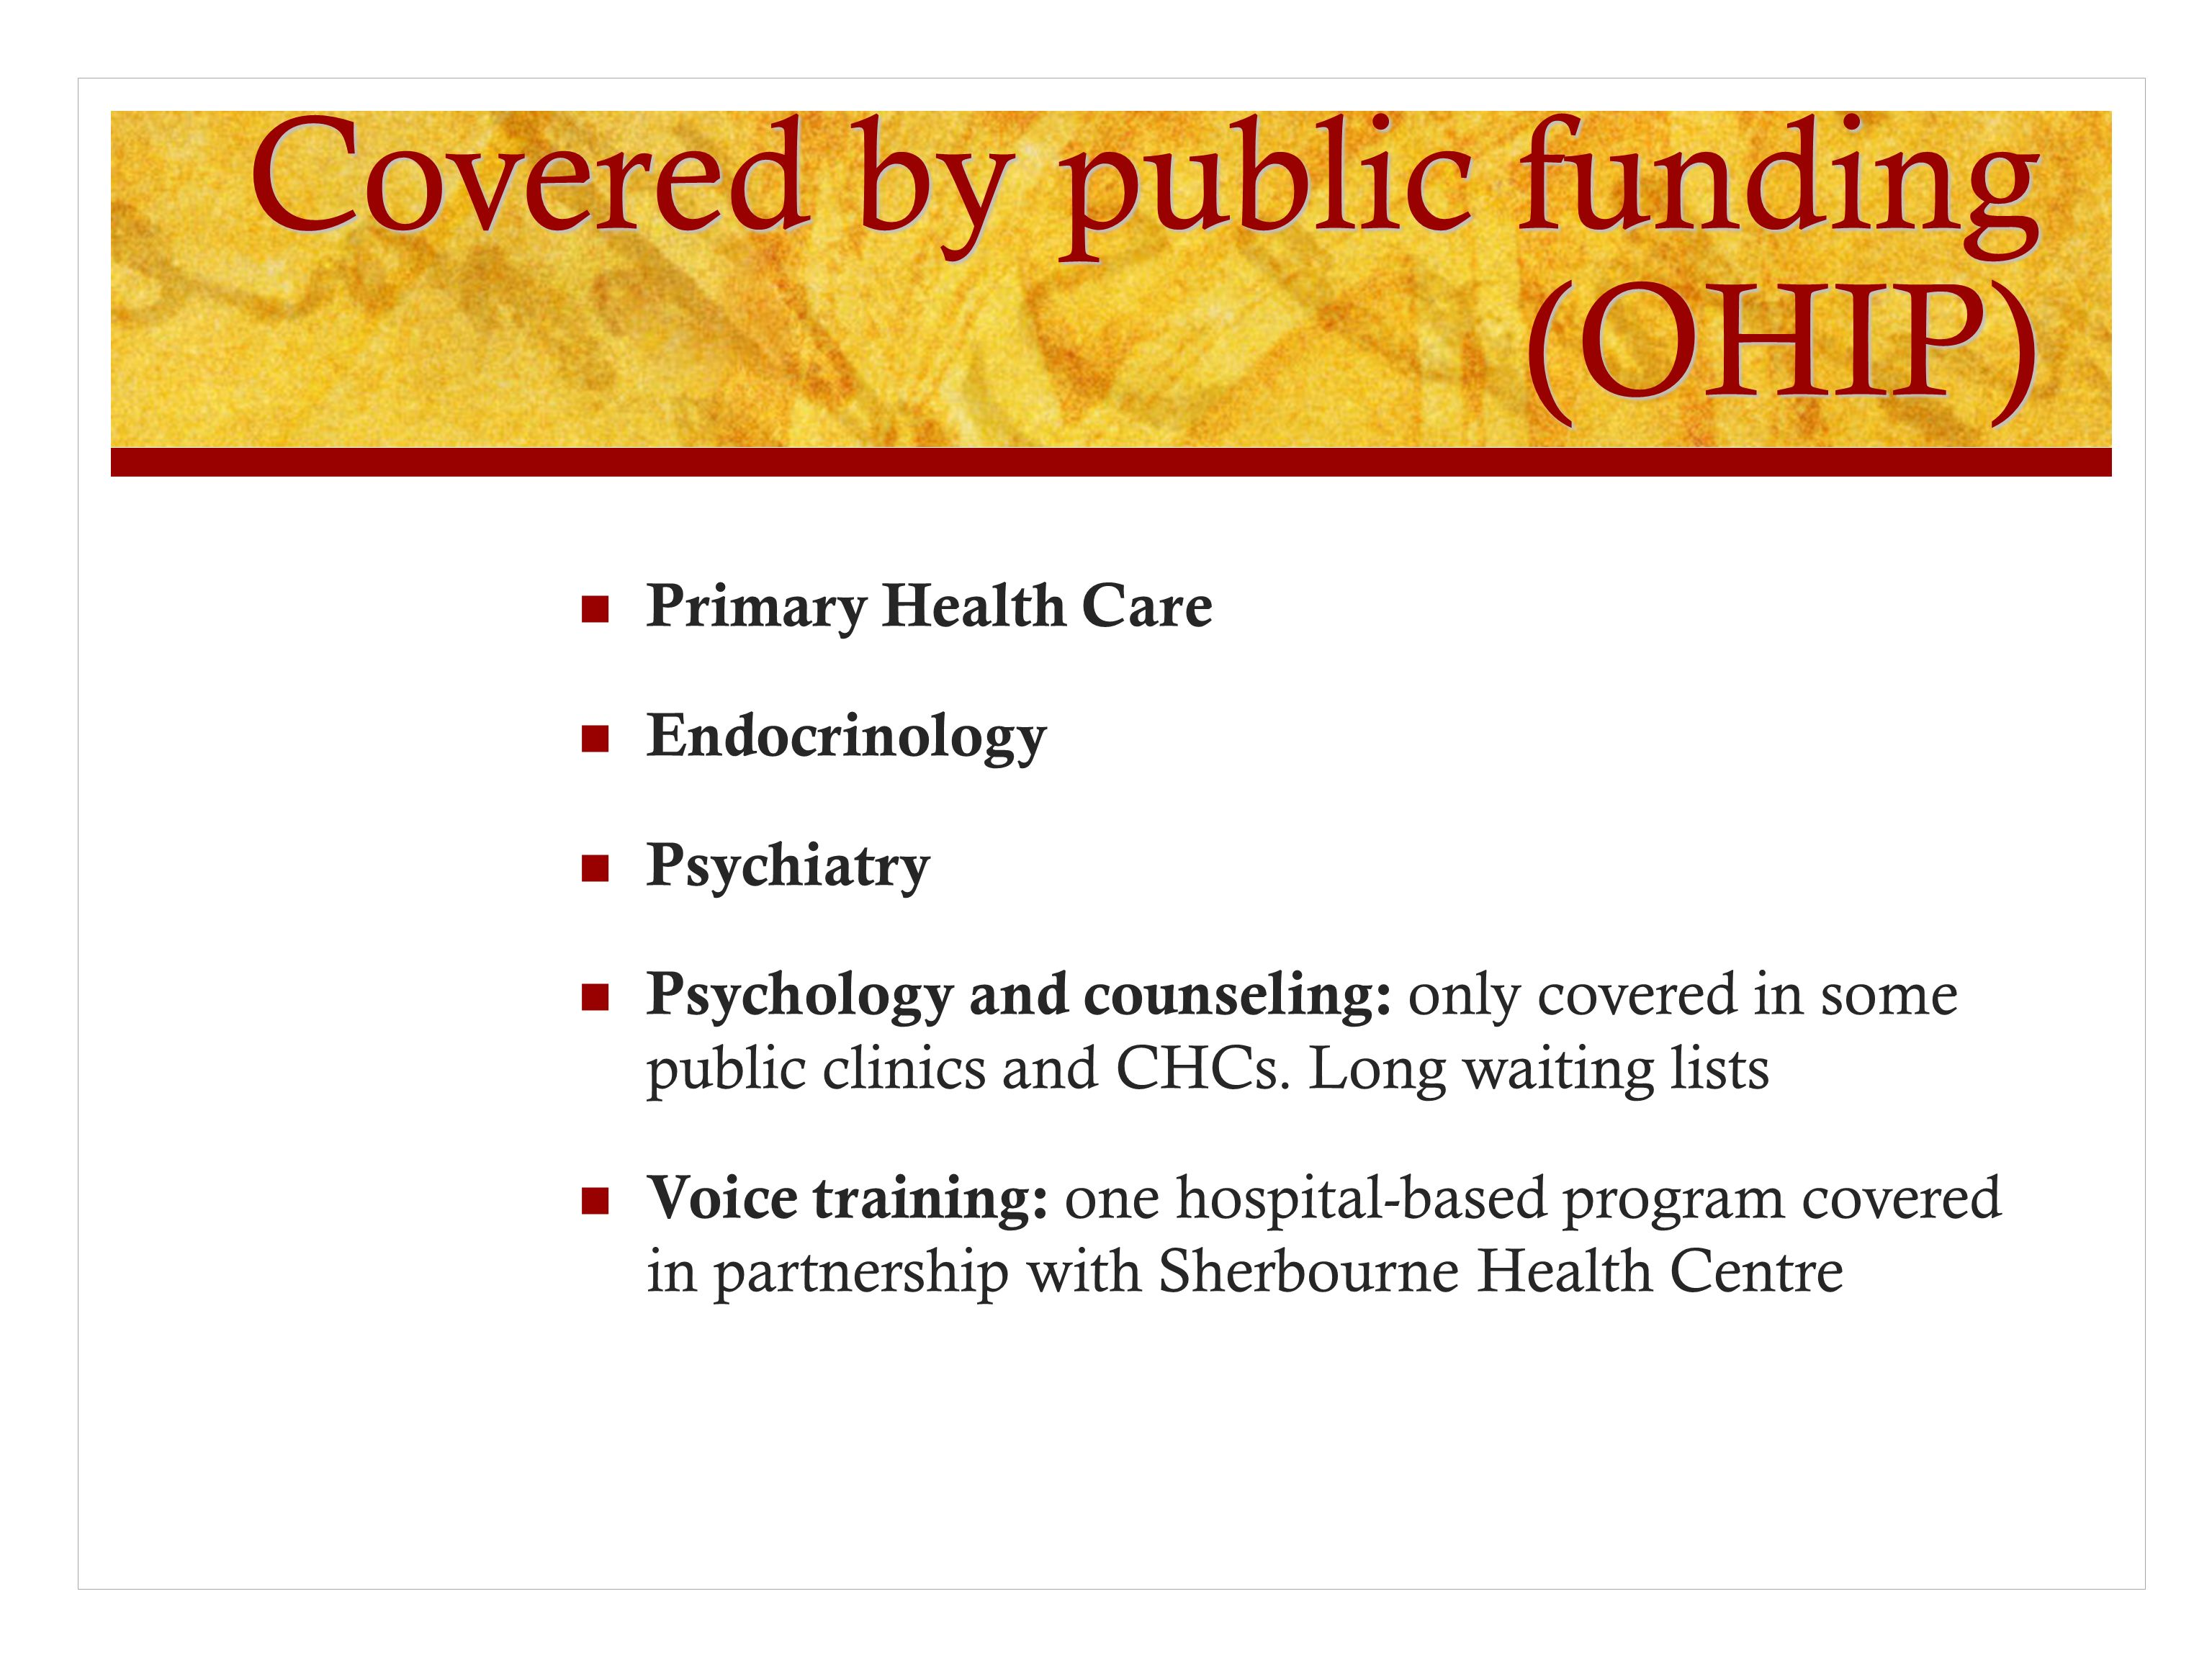 Covered by public funding (OHIP)